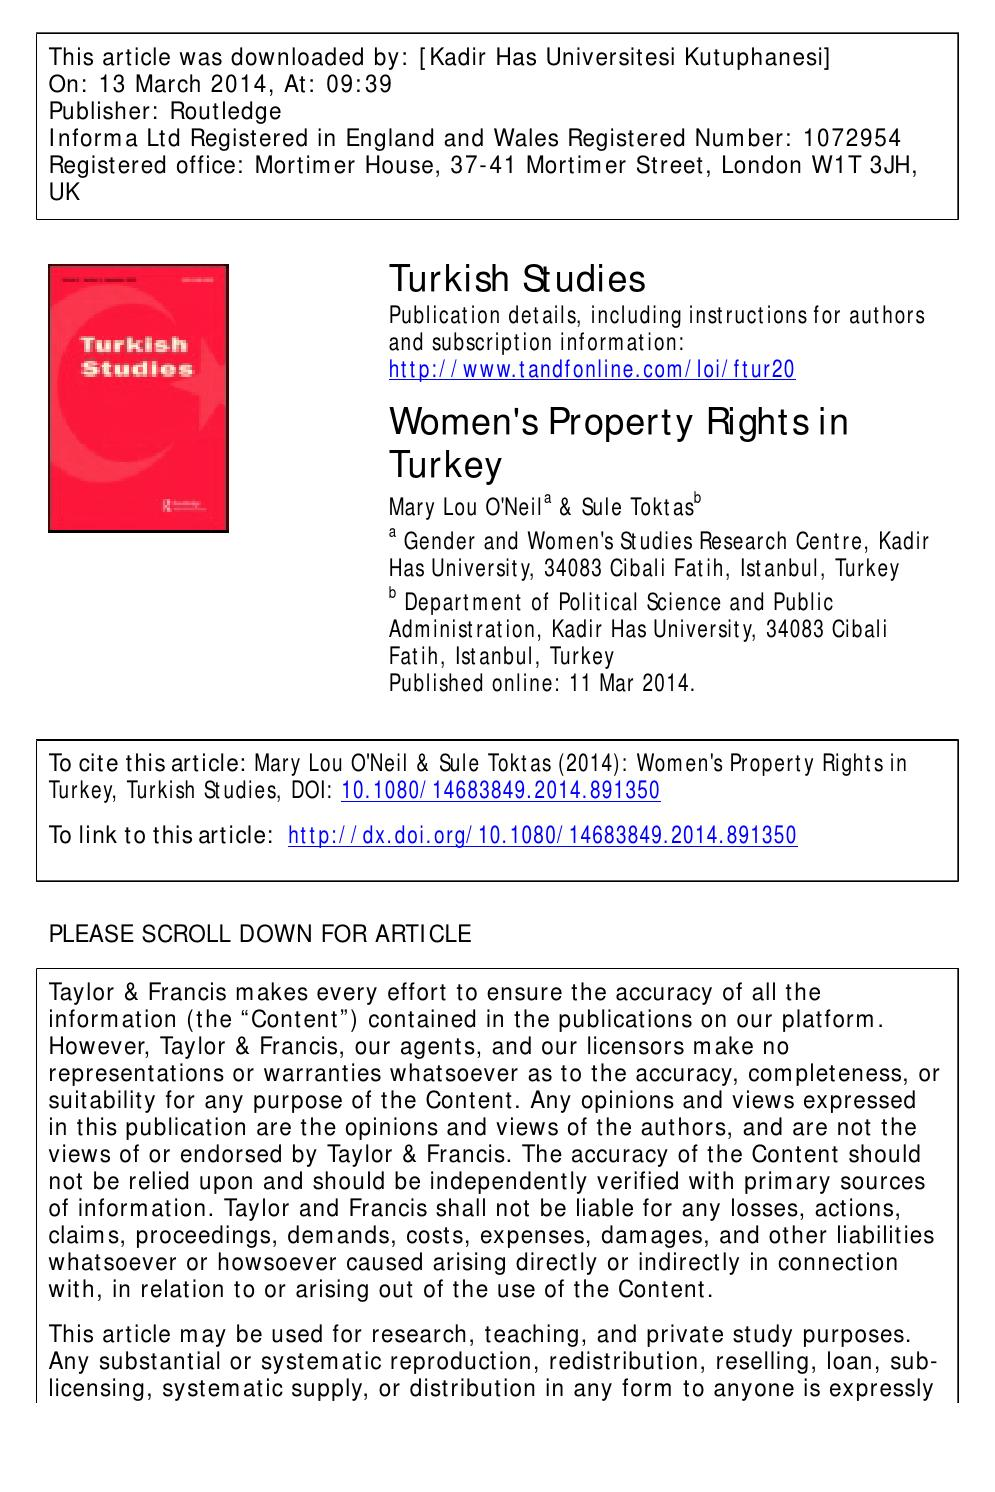 Interests of Turkish wives